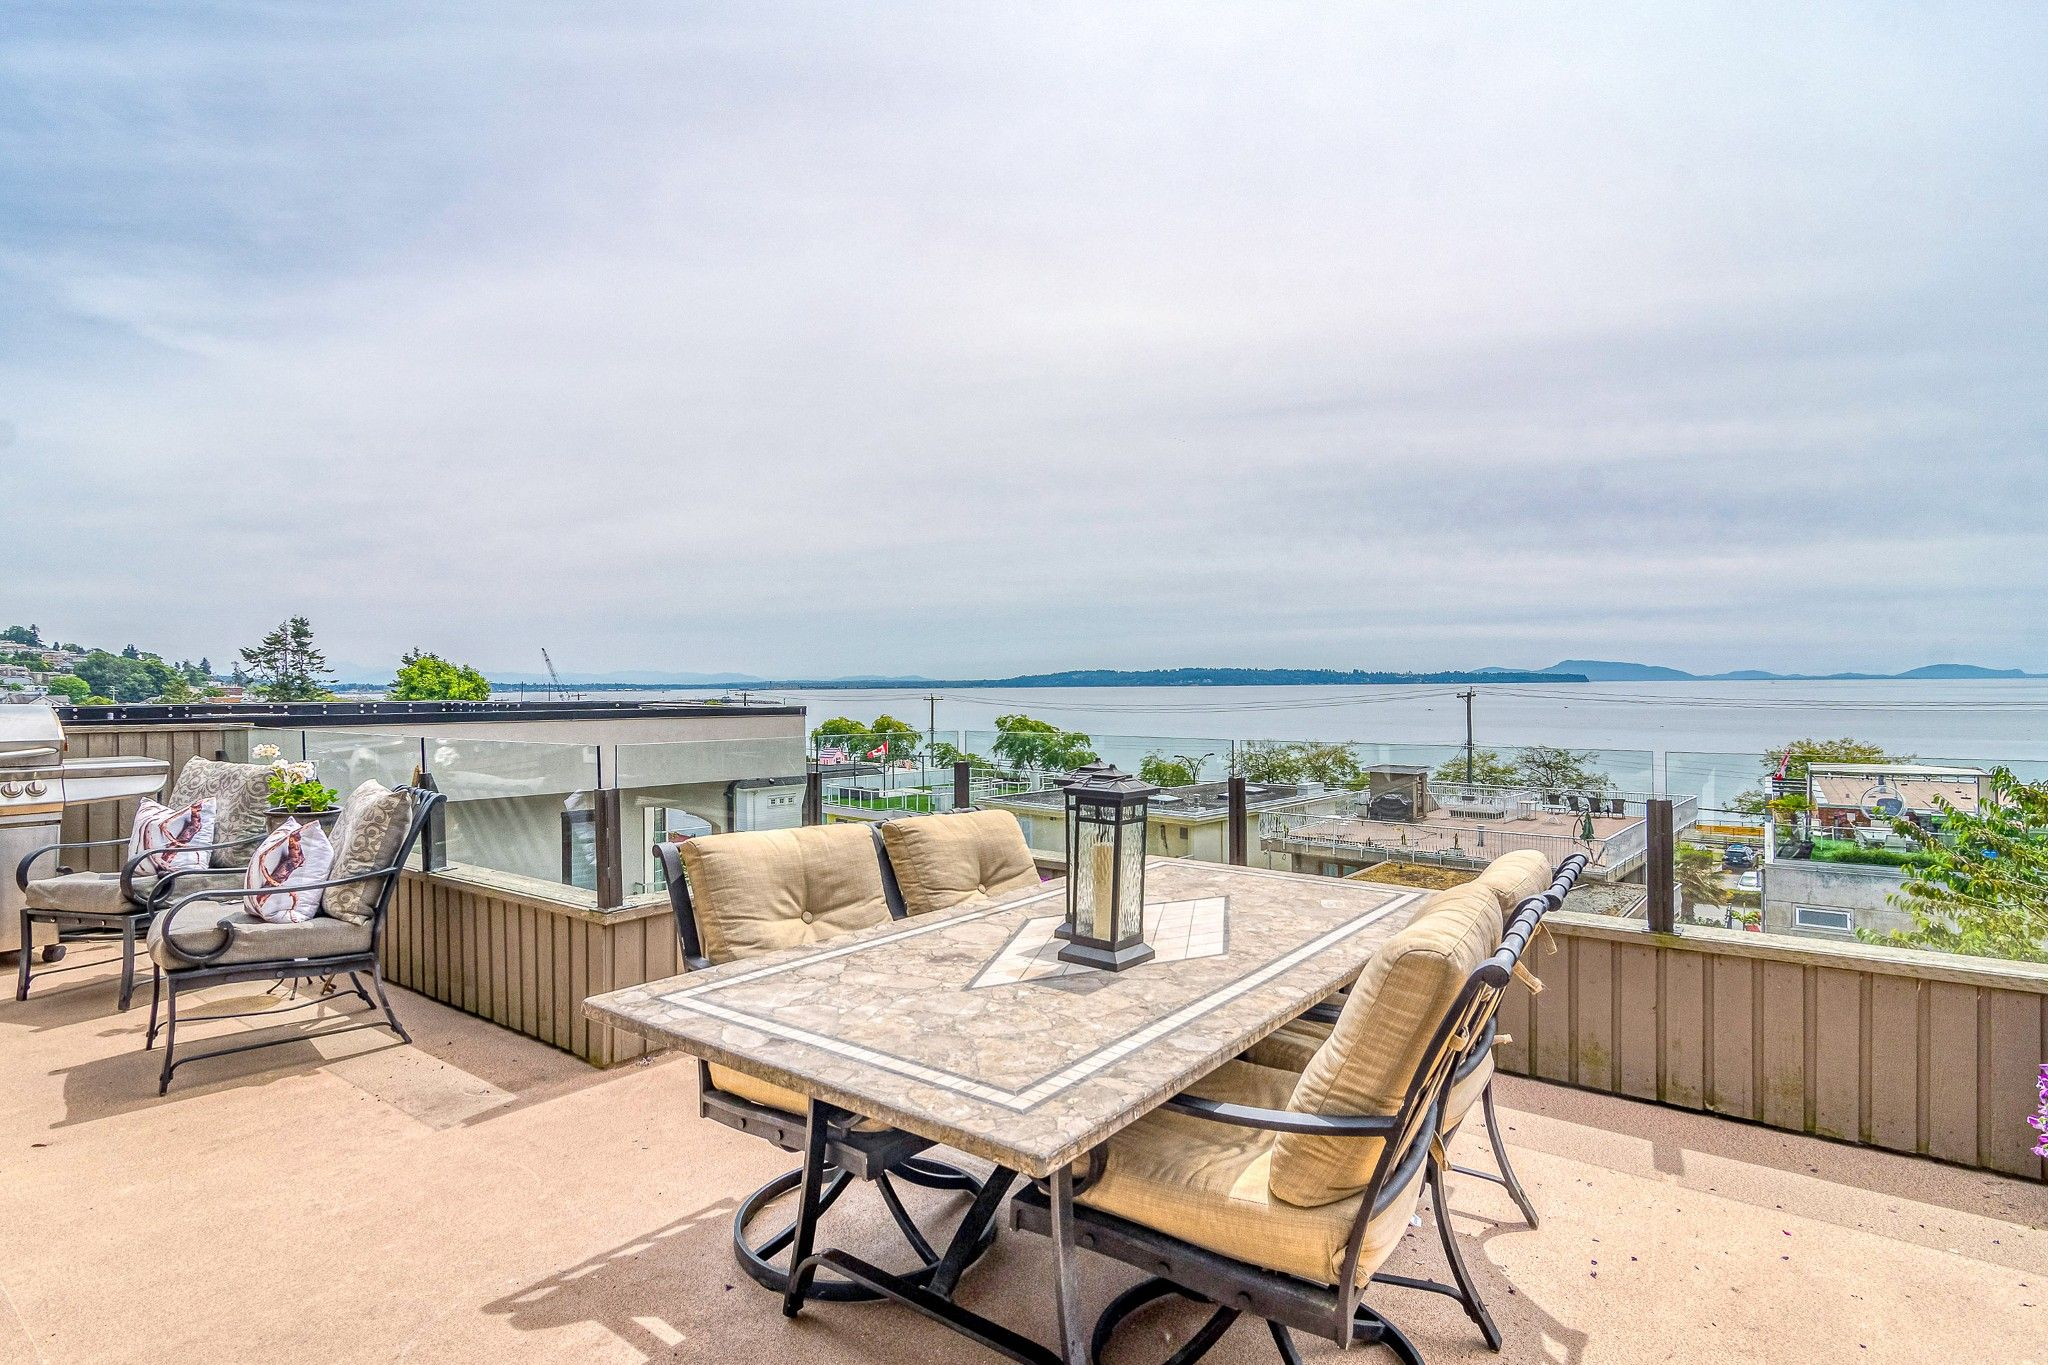 """Main Photo: 14616 WEST BEACH Avenue: White Rock House for sale in """"WHITE ROCK"""" (South Surrey White Rock)  : MLS®# R2408547"""